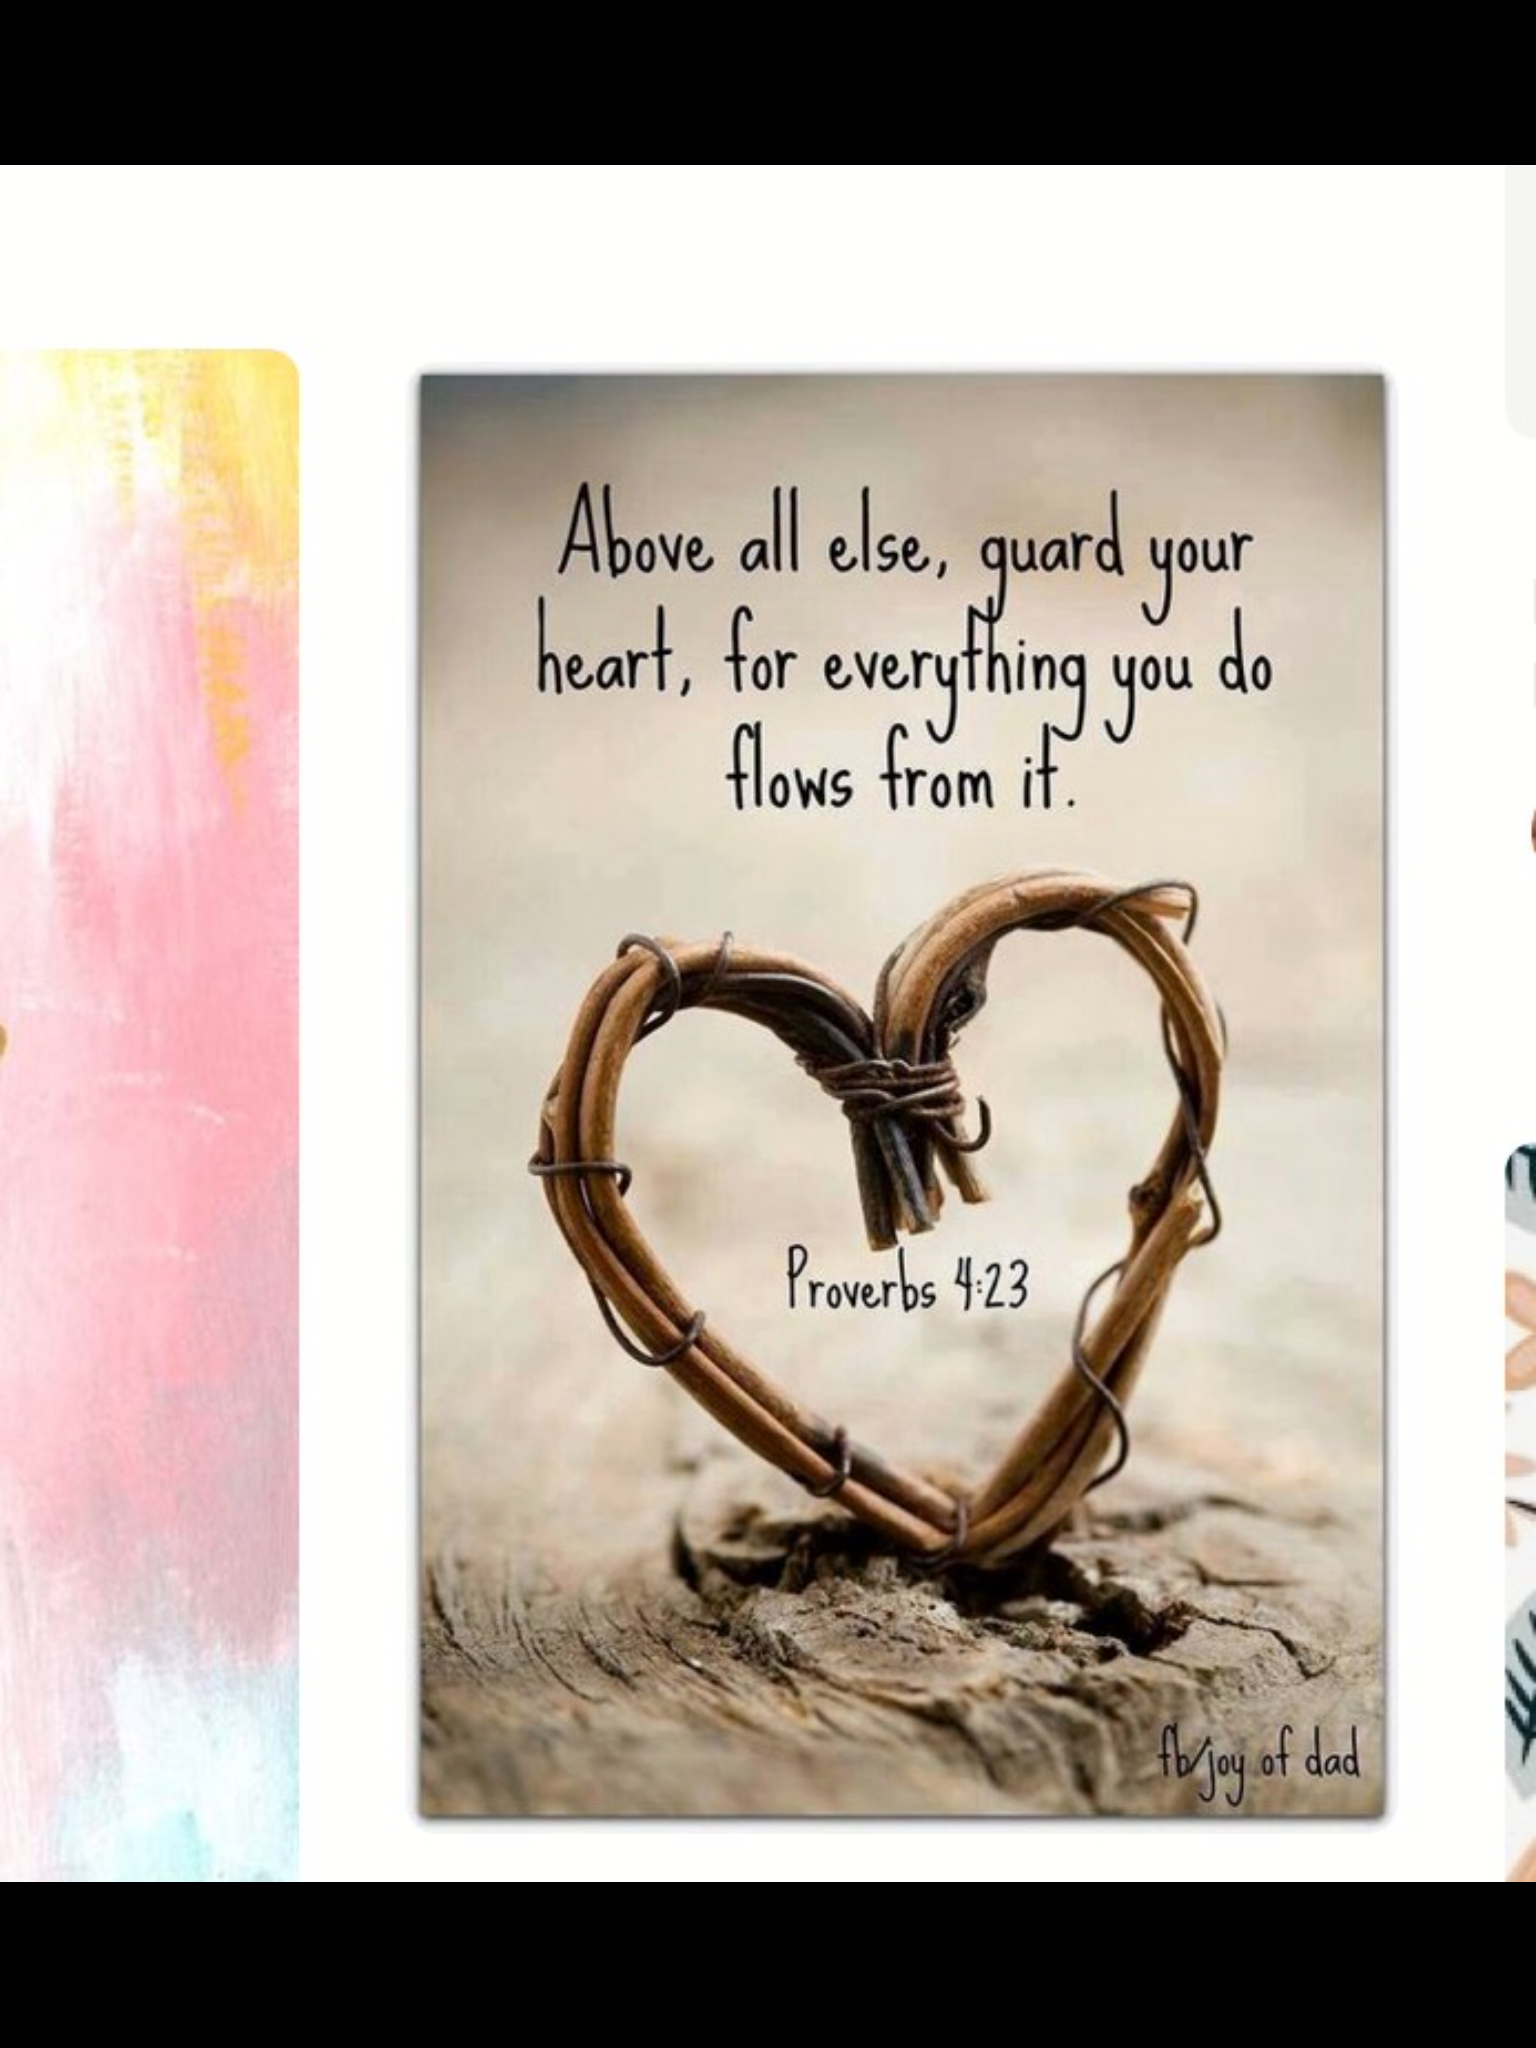 Bible Inspirational Quotes About Life Pincindy Mckenzie On Hearts Hearts Hearts  Pinterest  Bible